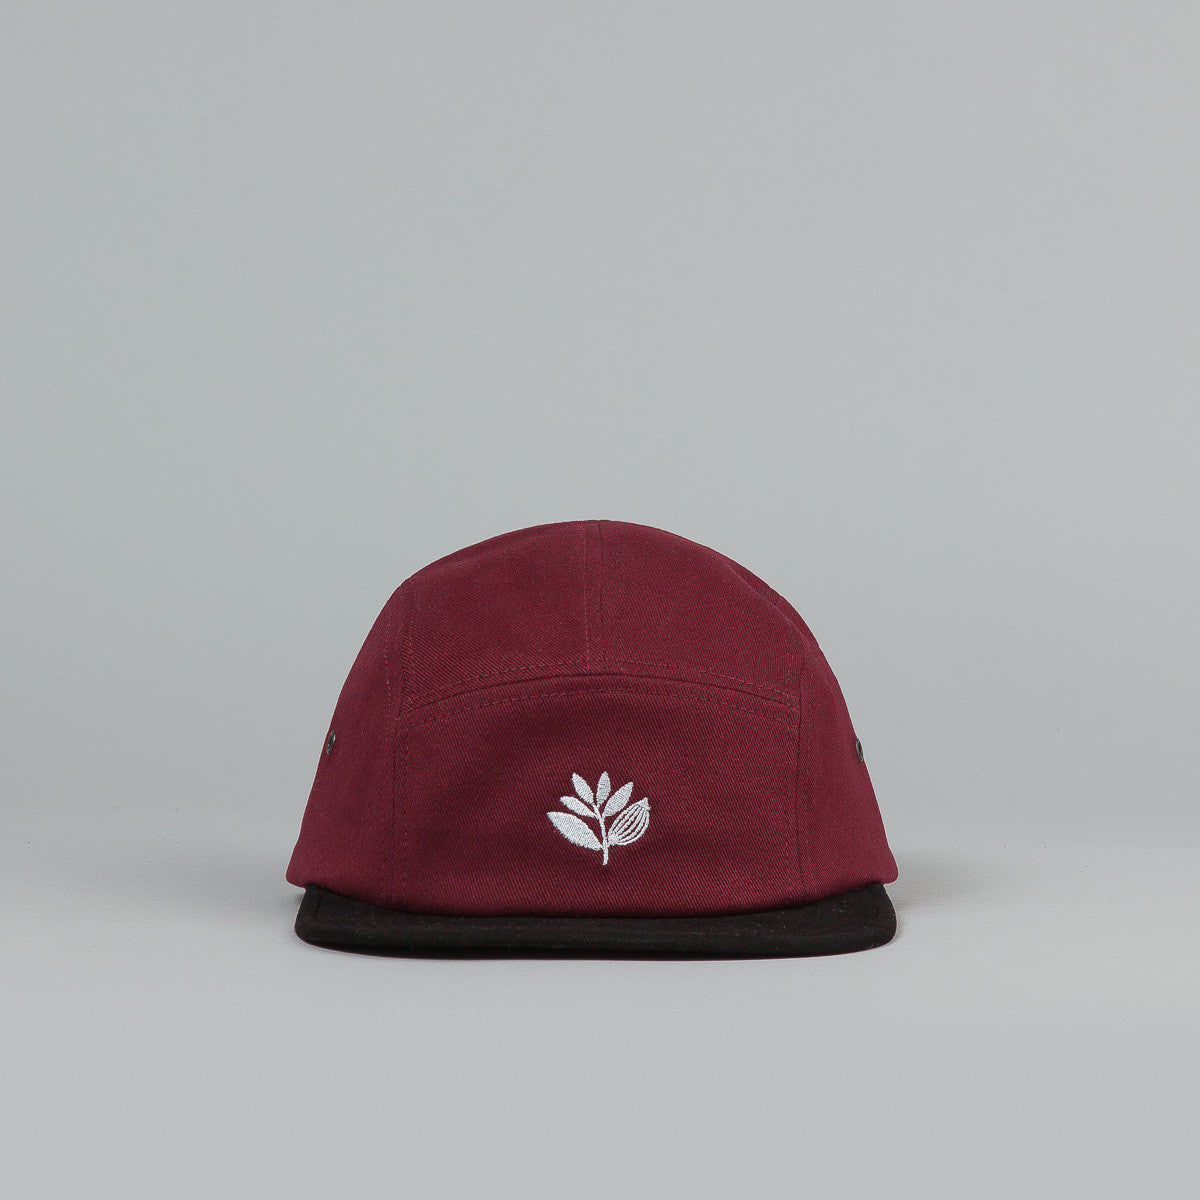 Magenta Plant 5 Panel Cap - Burgundy / Black